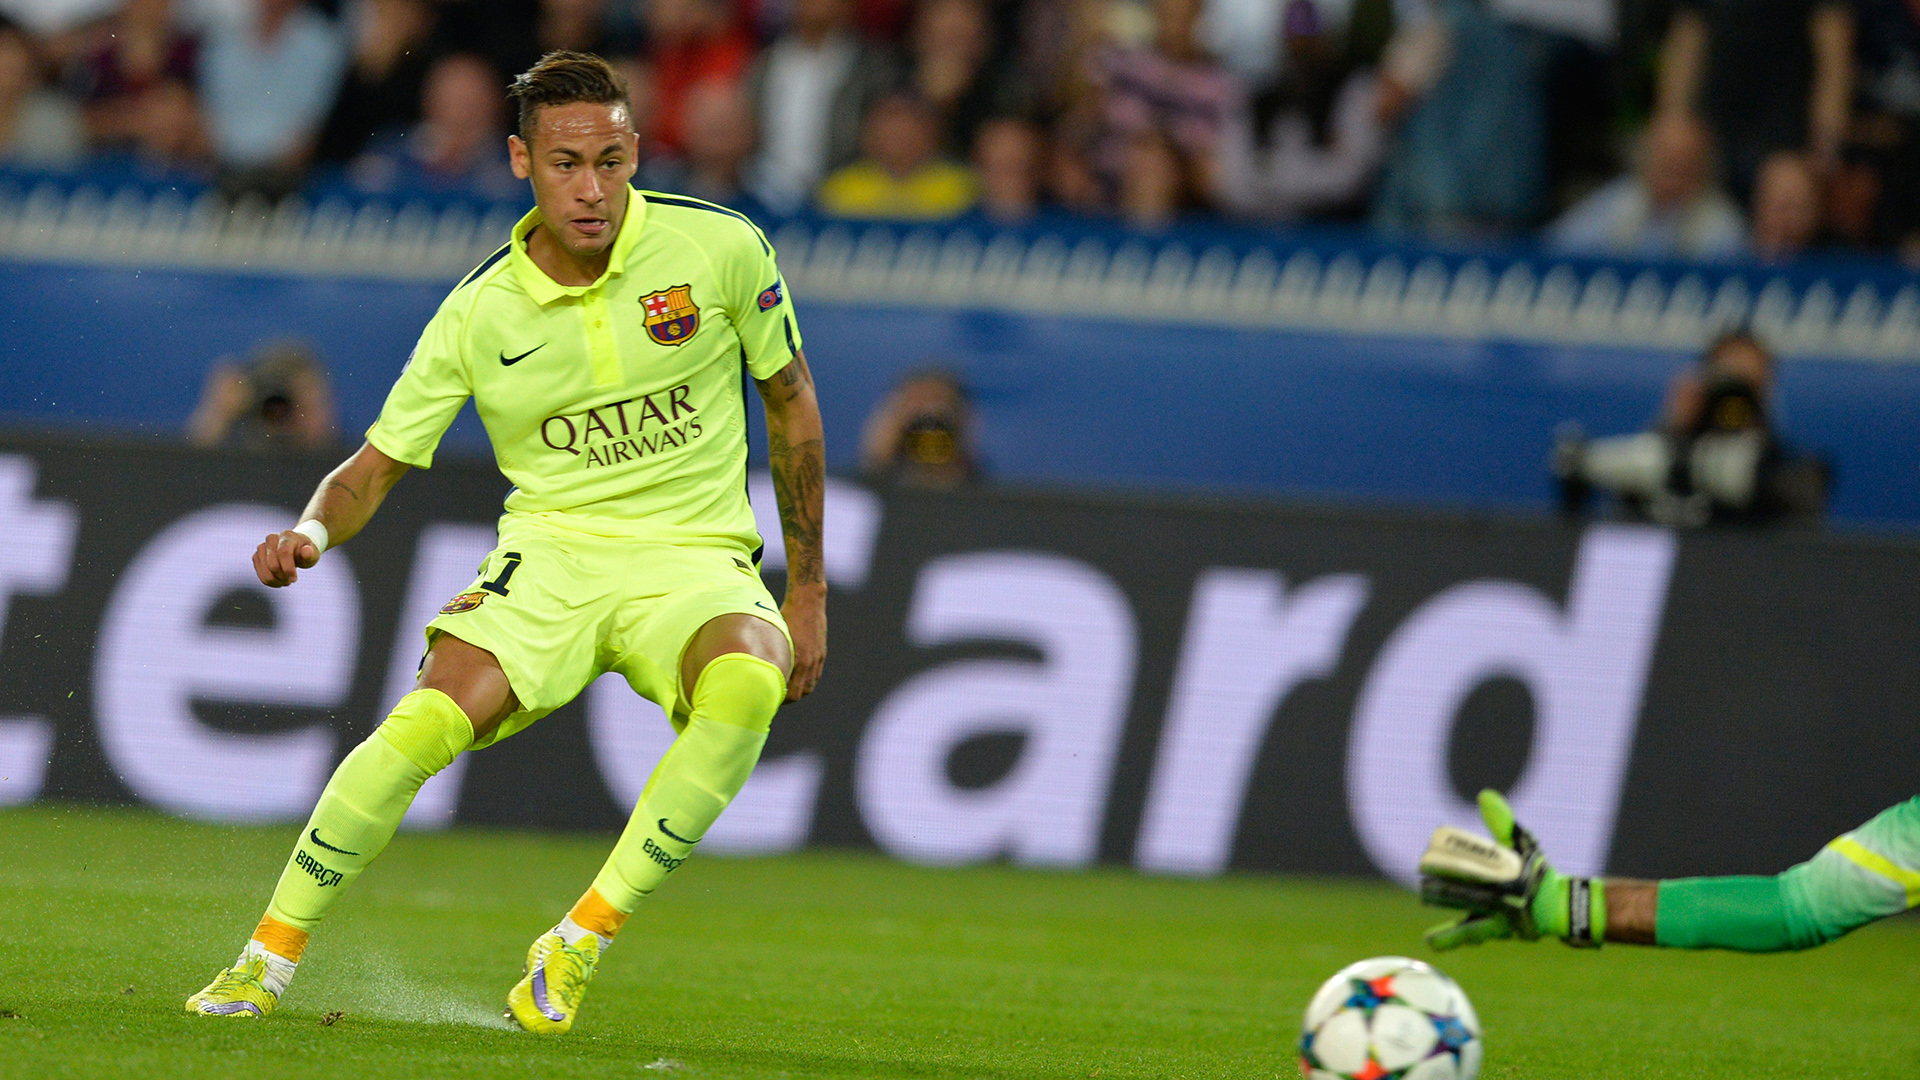 Neymar Paris Saint Germain Barcelona Champions League Hd Mobile Download Images